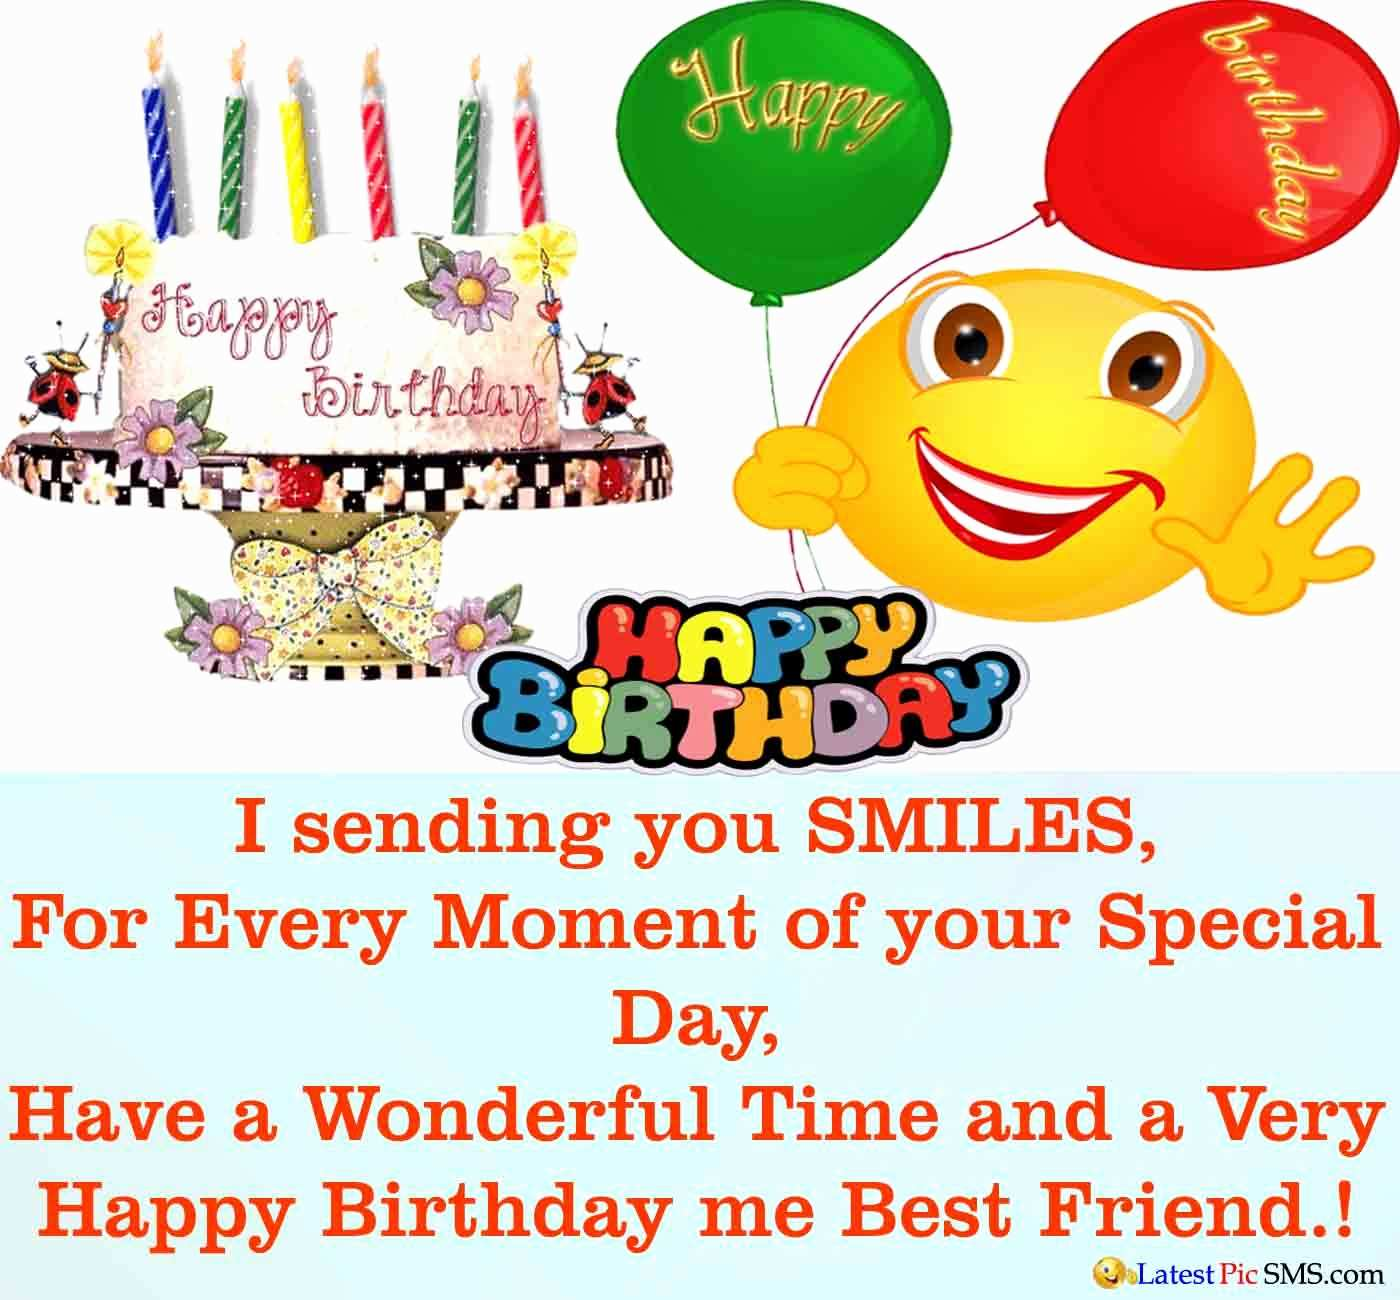 happy birthday wishes for friend funny ; birthday-wishes-for-best-friend-funny-lovely-happy-birthday-wishes-in-hindi-for-girlfriend-new-funny-happy-of-birthday-wishes-for-best-friend-funny